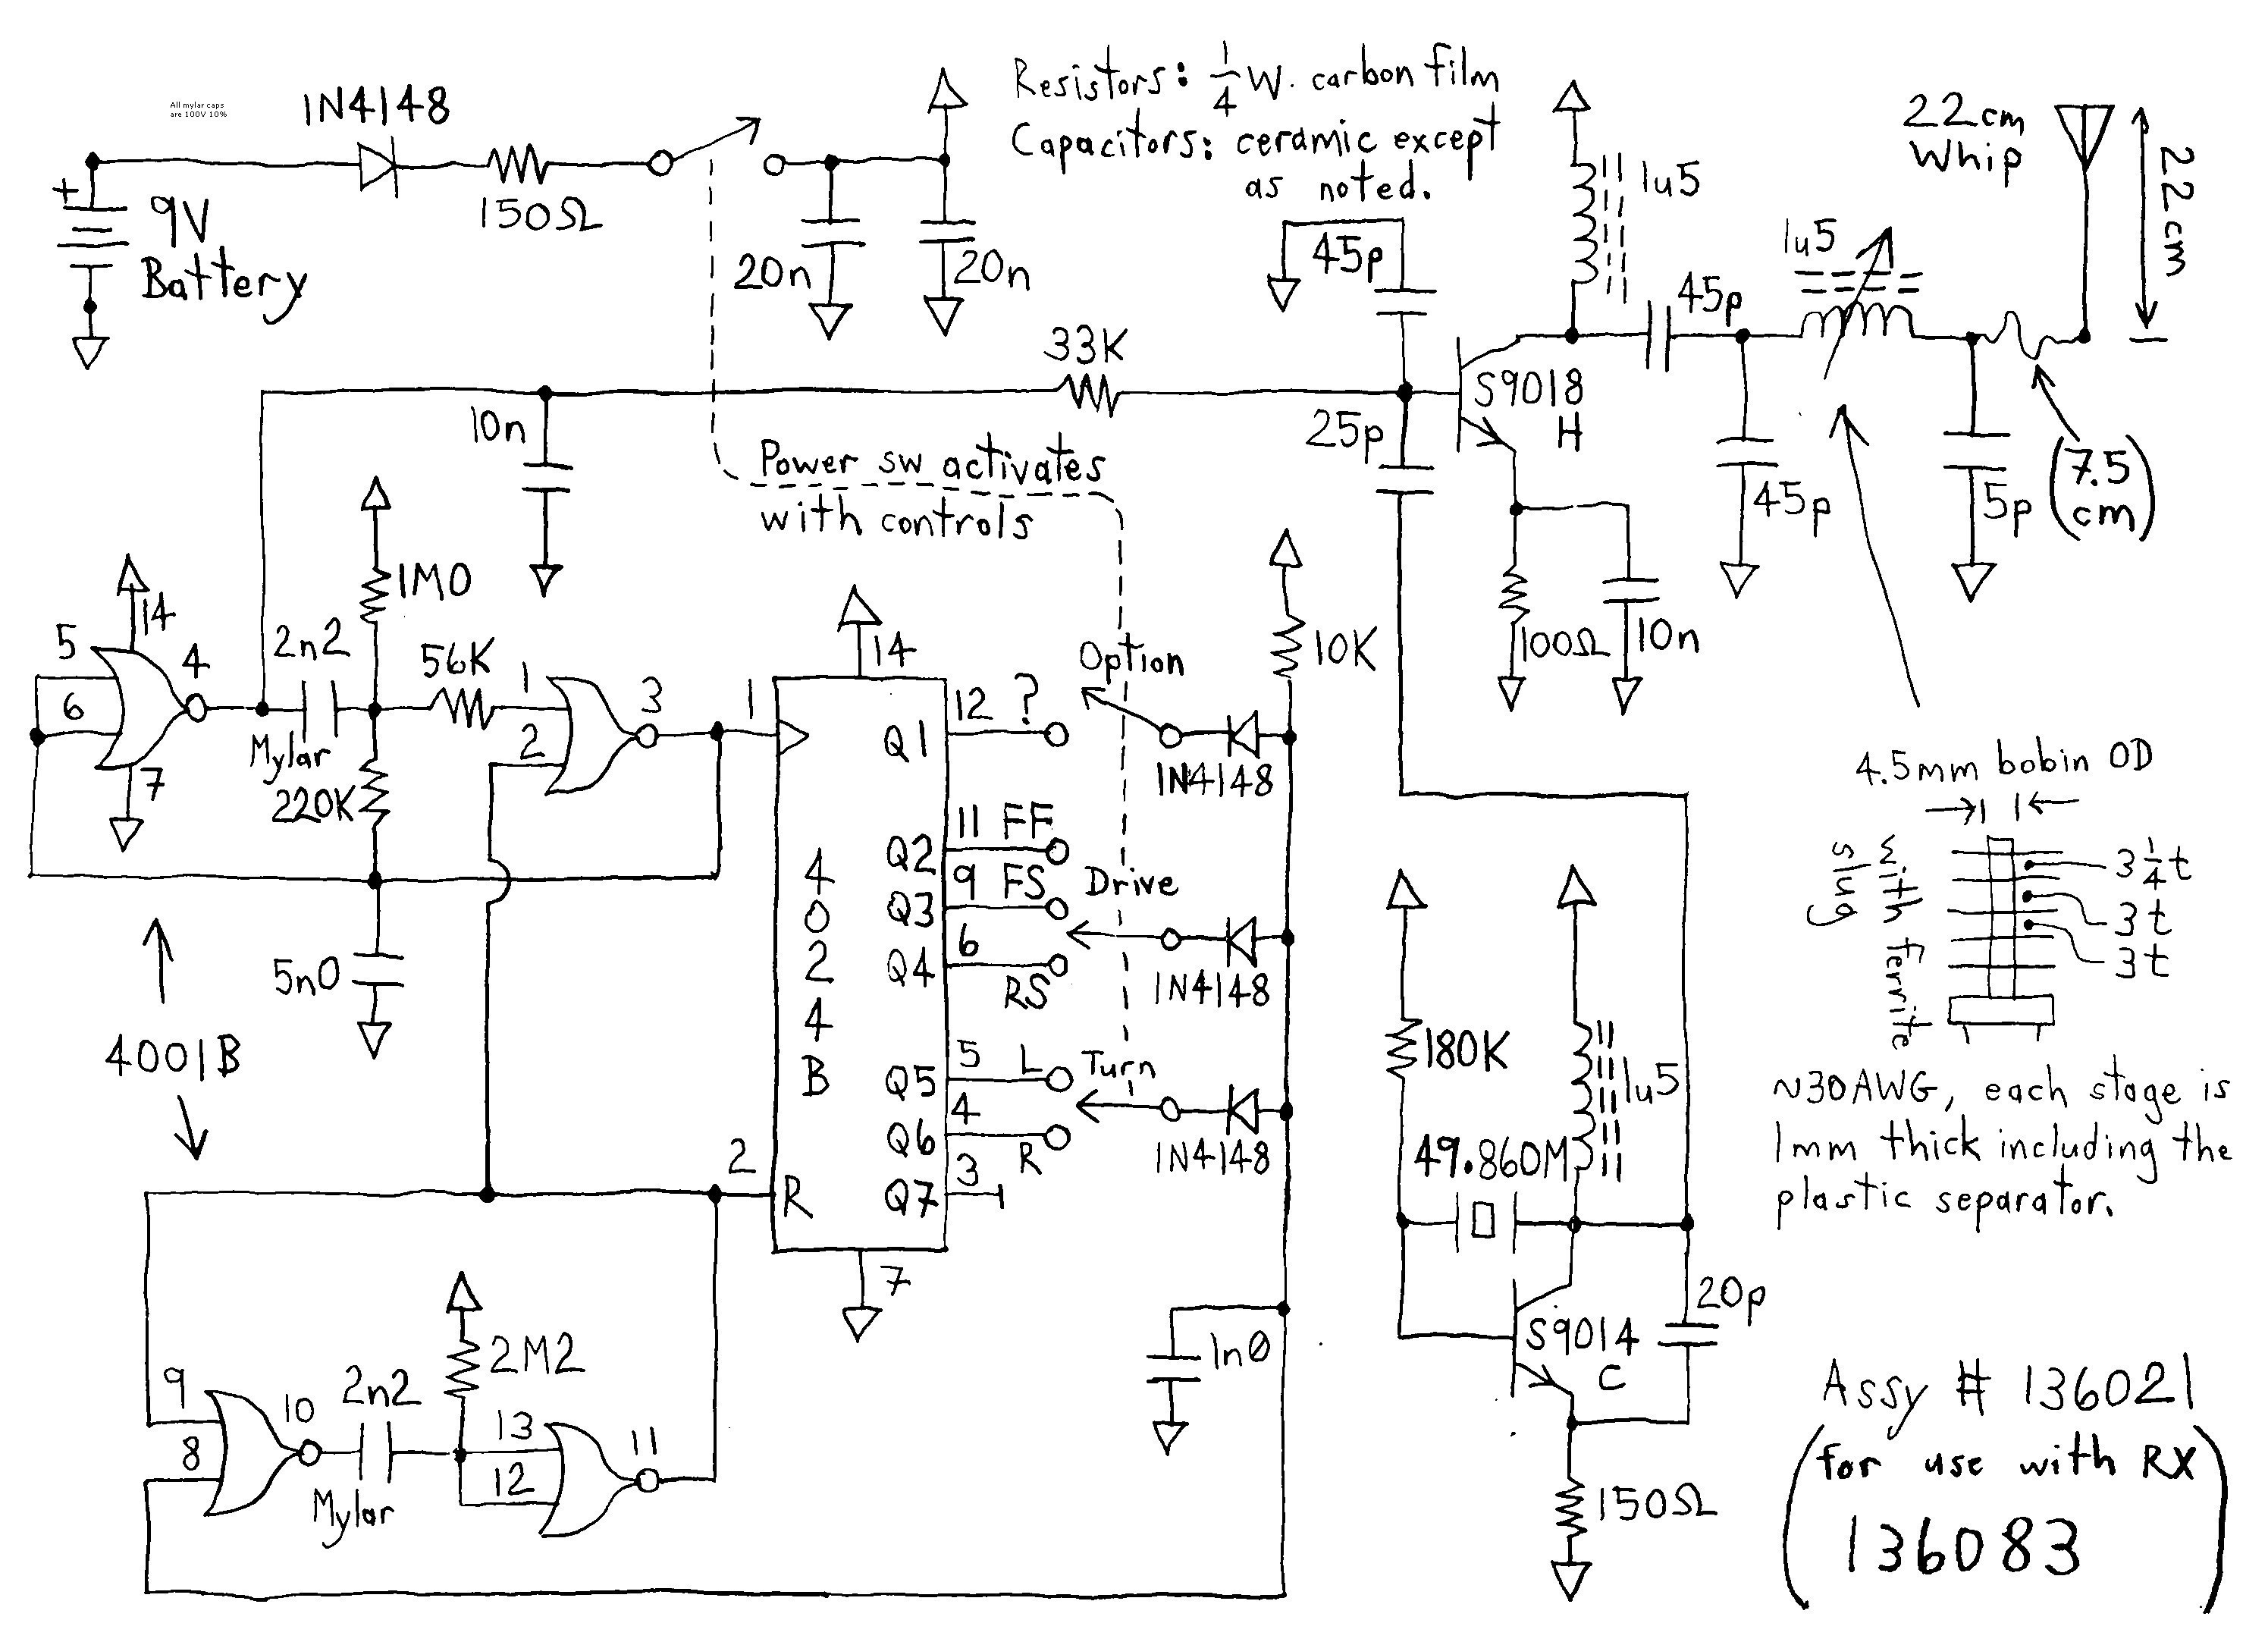 Wiring Diagram Kawasaki Bayou 220 New Electrical Wiring Circuit